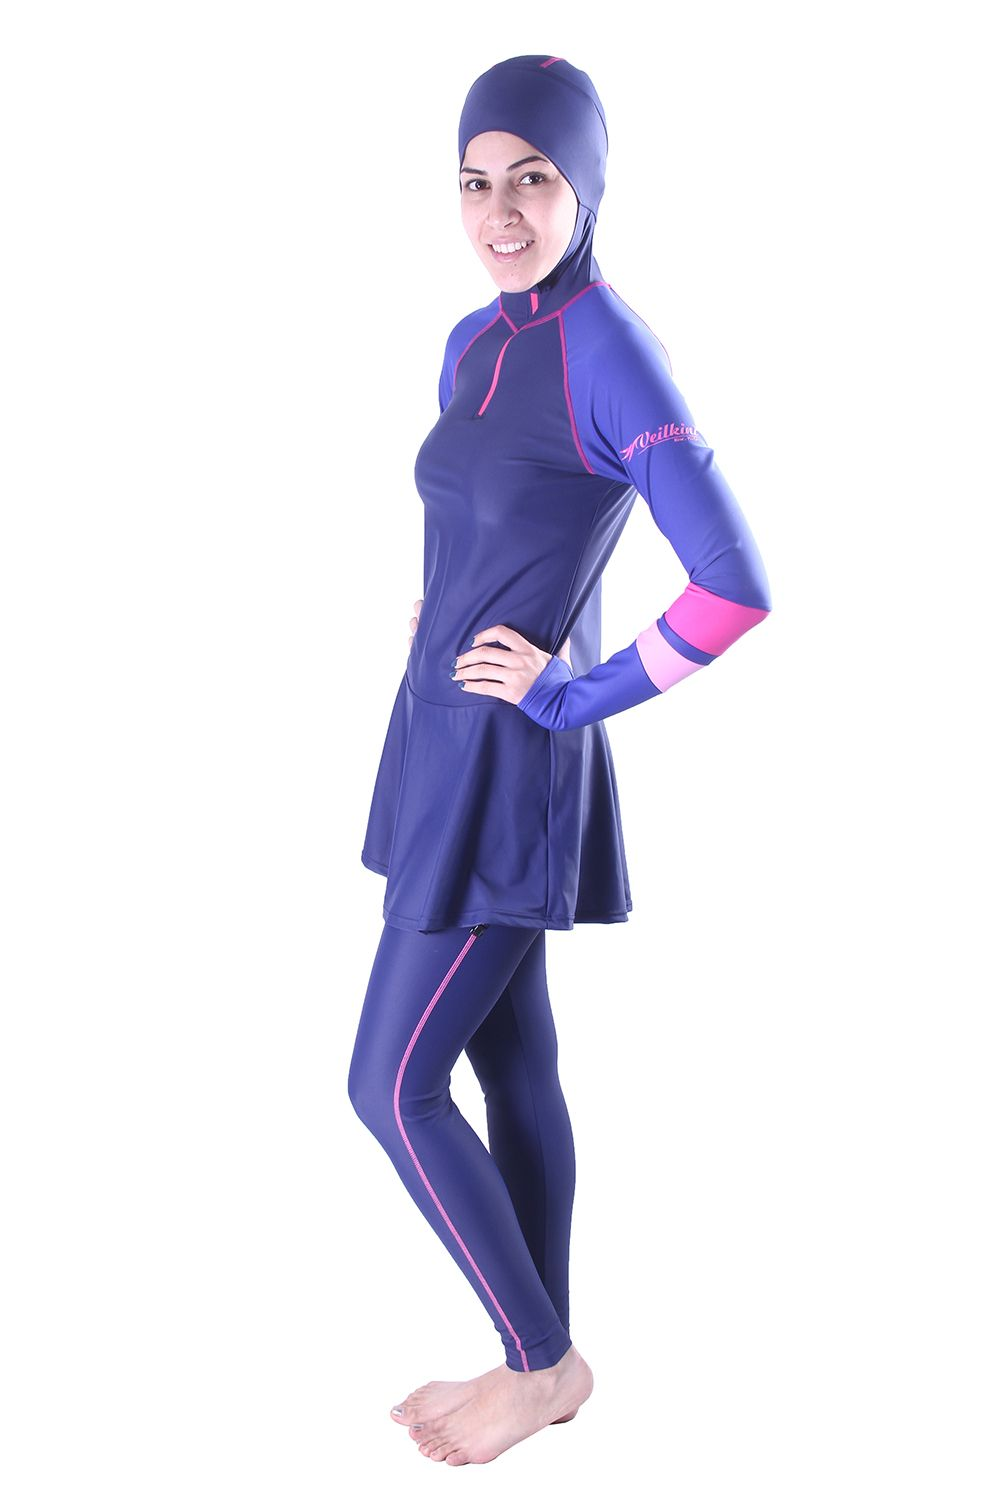 d61b015977c Modest Swimwear veilkini burkini Islamic Swimwear for Women, Muslimah  Swimsuit, Islamic Swimsuits, Hijab Swimming Suits, Veilkini  www.veilkini.com #veilkini ...